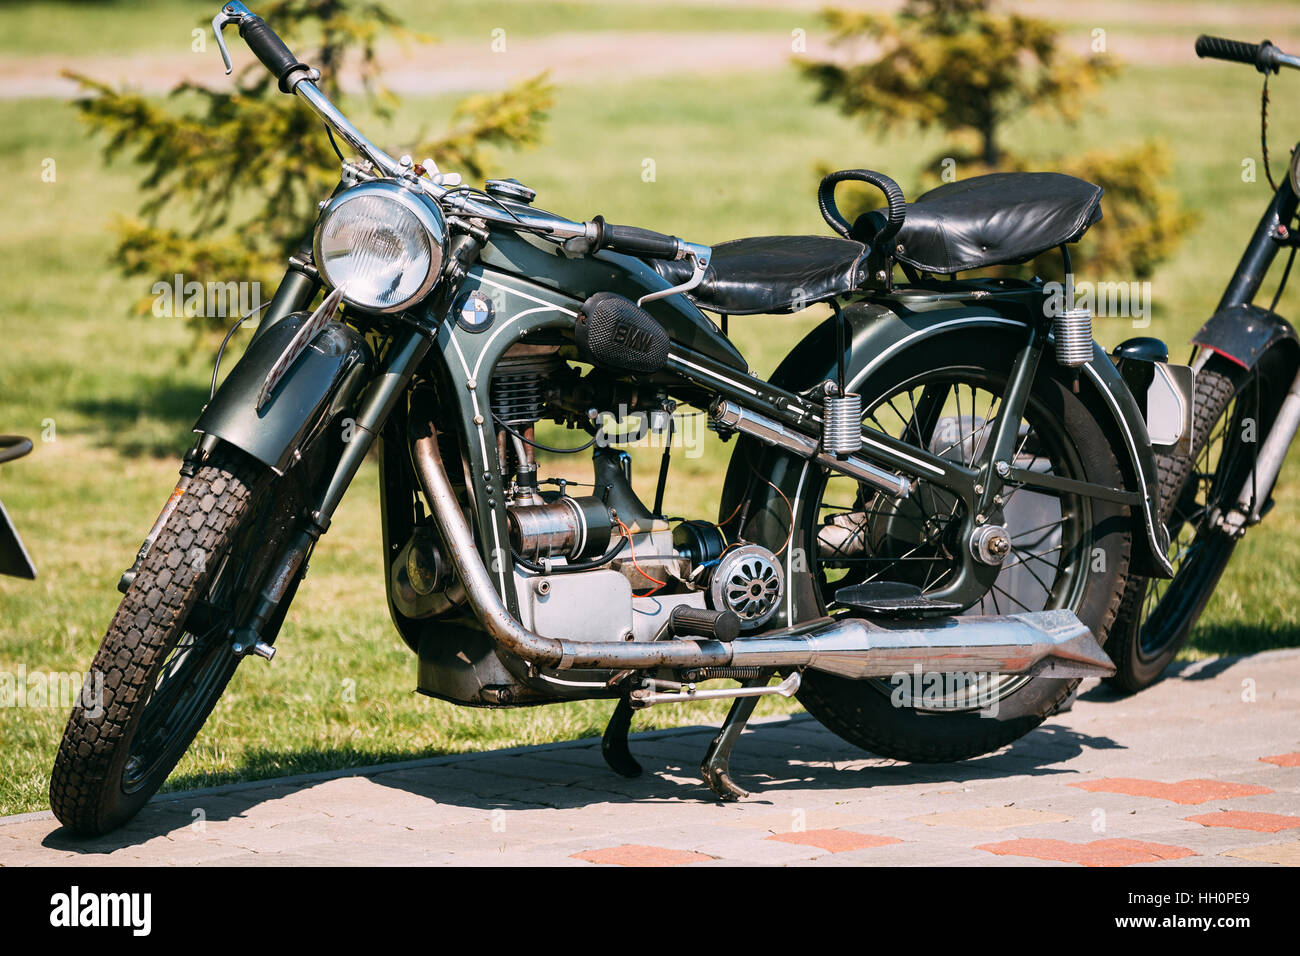 Gomel, Belarus - May 9, 2016: The Old Rarity Two-Wheeled Gray BMW Motorcycle, Displayed On The Pavement In Sunny - Stock Image